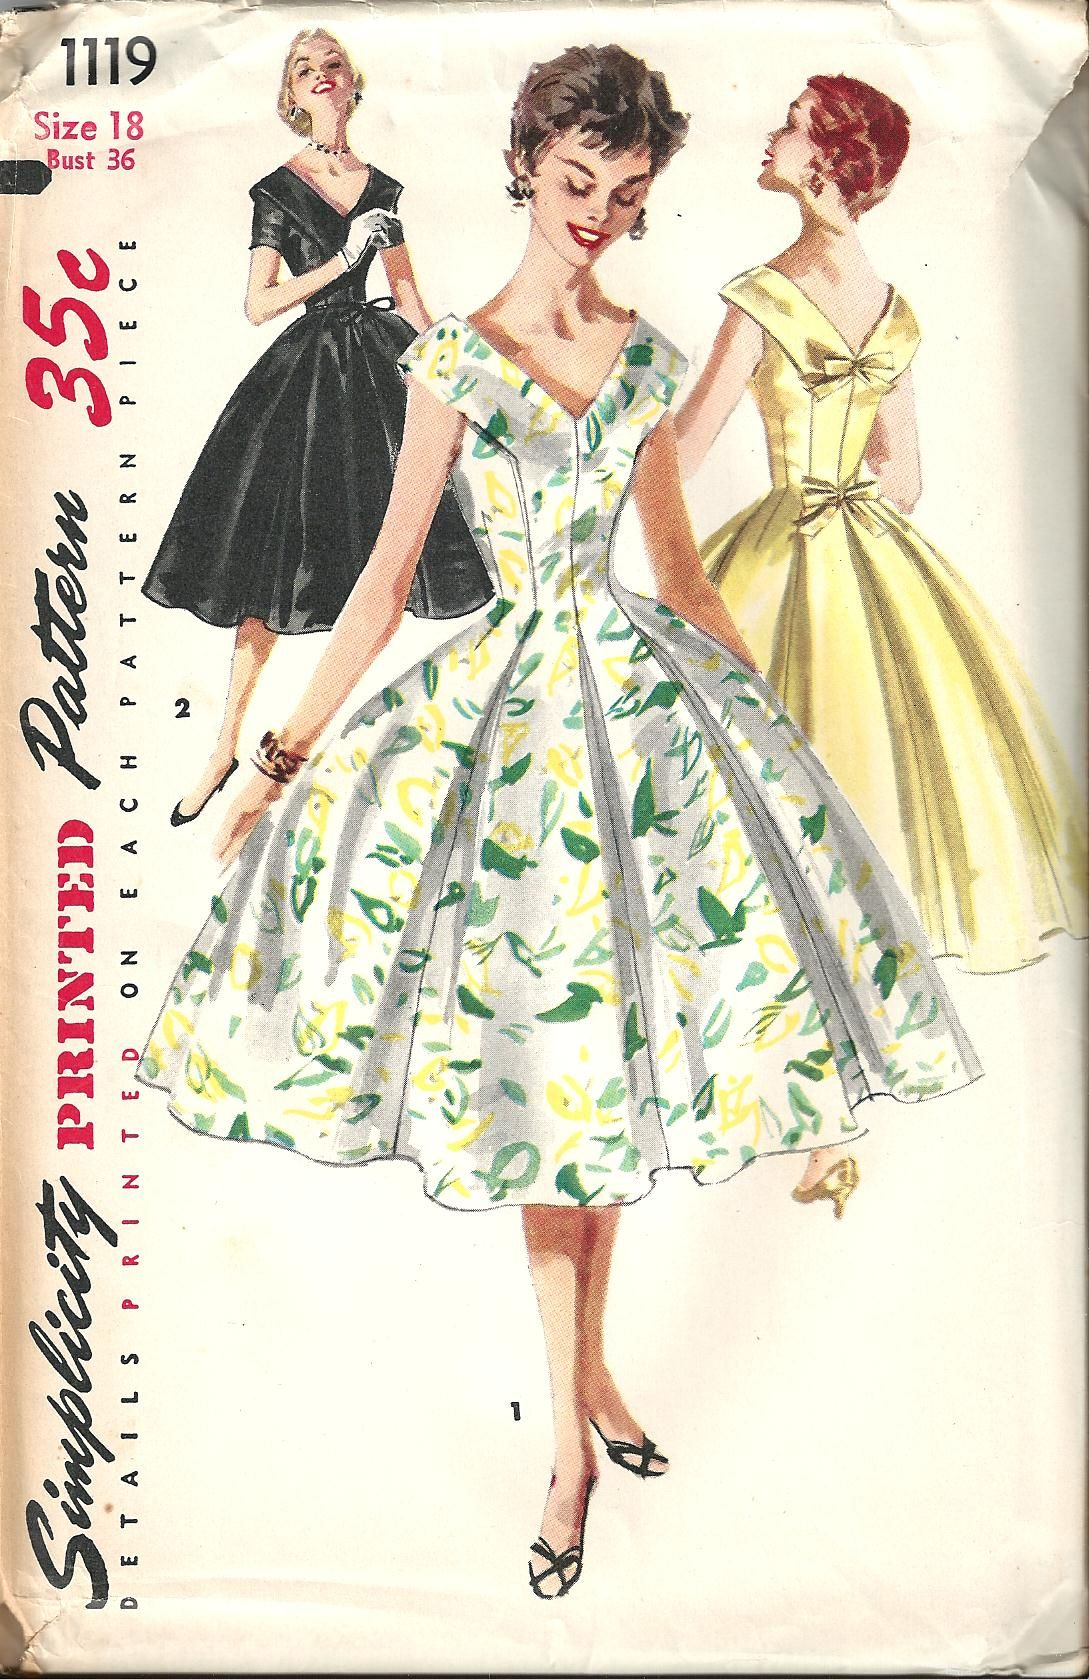 vintage sewing patterns 1950s - Google Search | Sewing | Pinterest ...